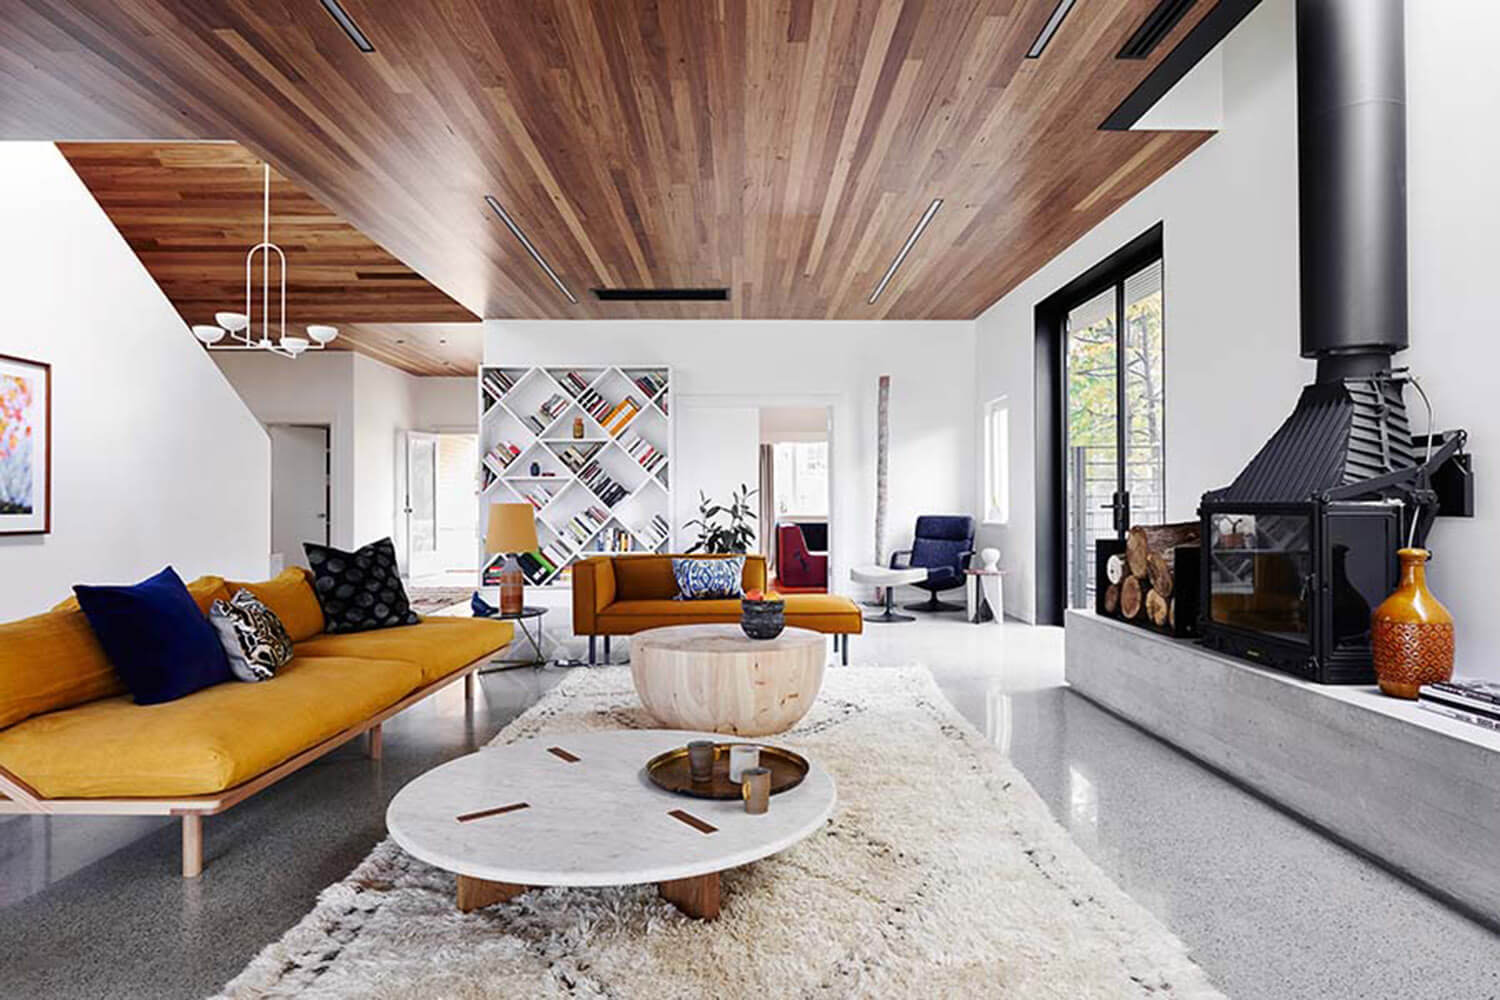 Living Room House Deco est living idea 2016 awards deco house amber road shortlist by lisa cohen